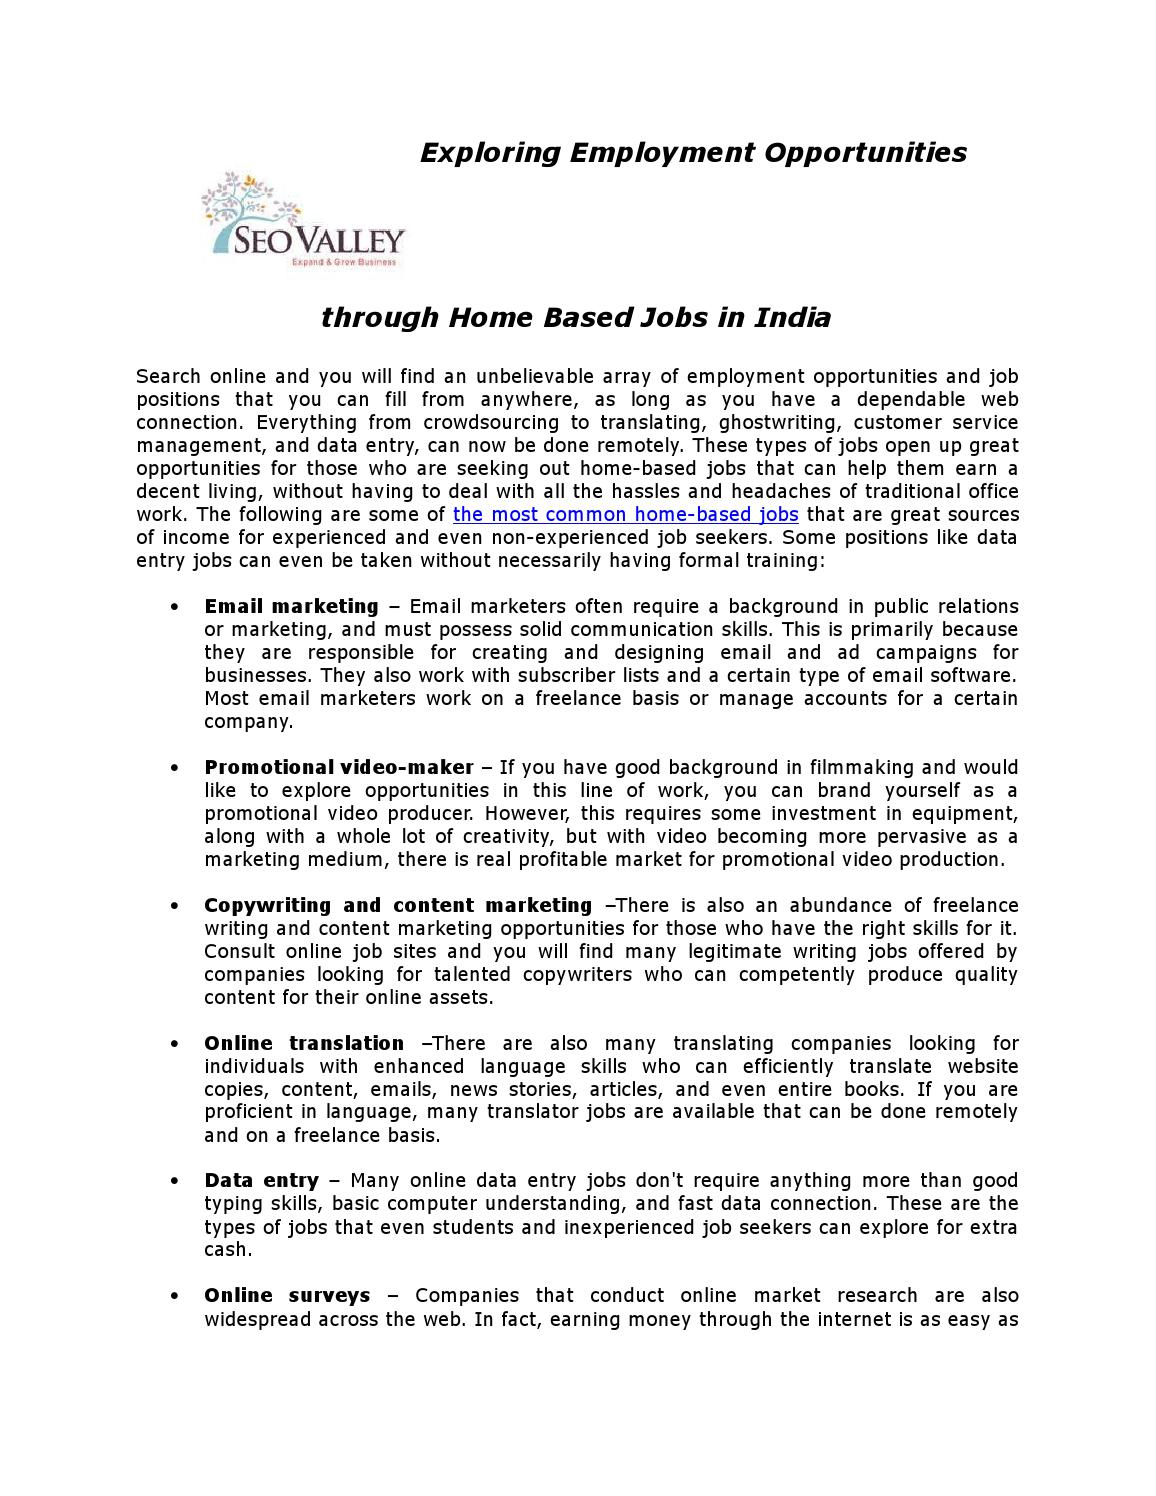 Exploring Employment Opportunities through Home Based Jobs in India ...